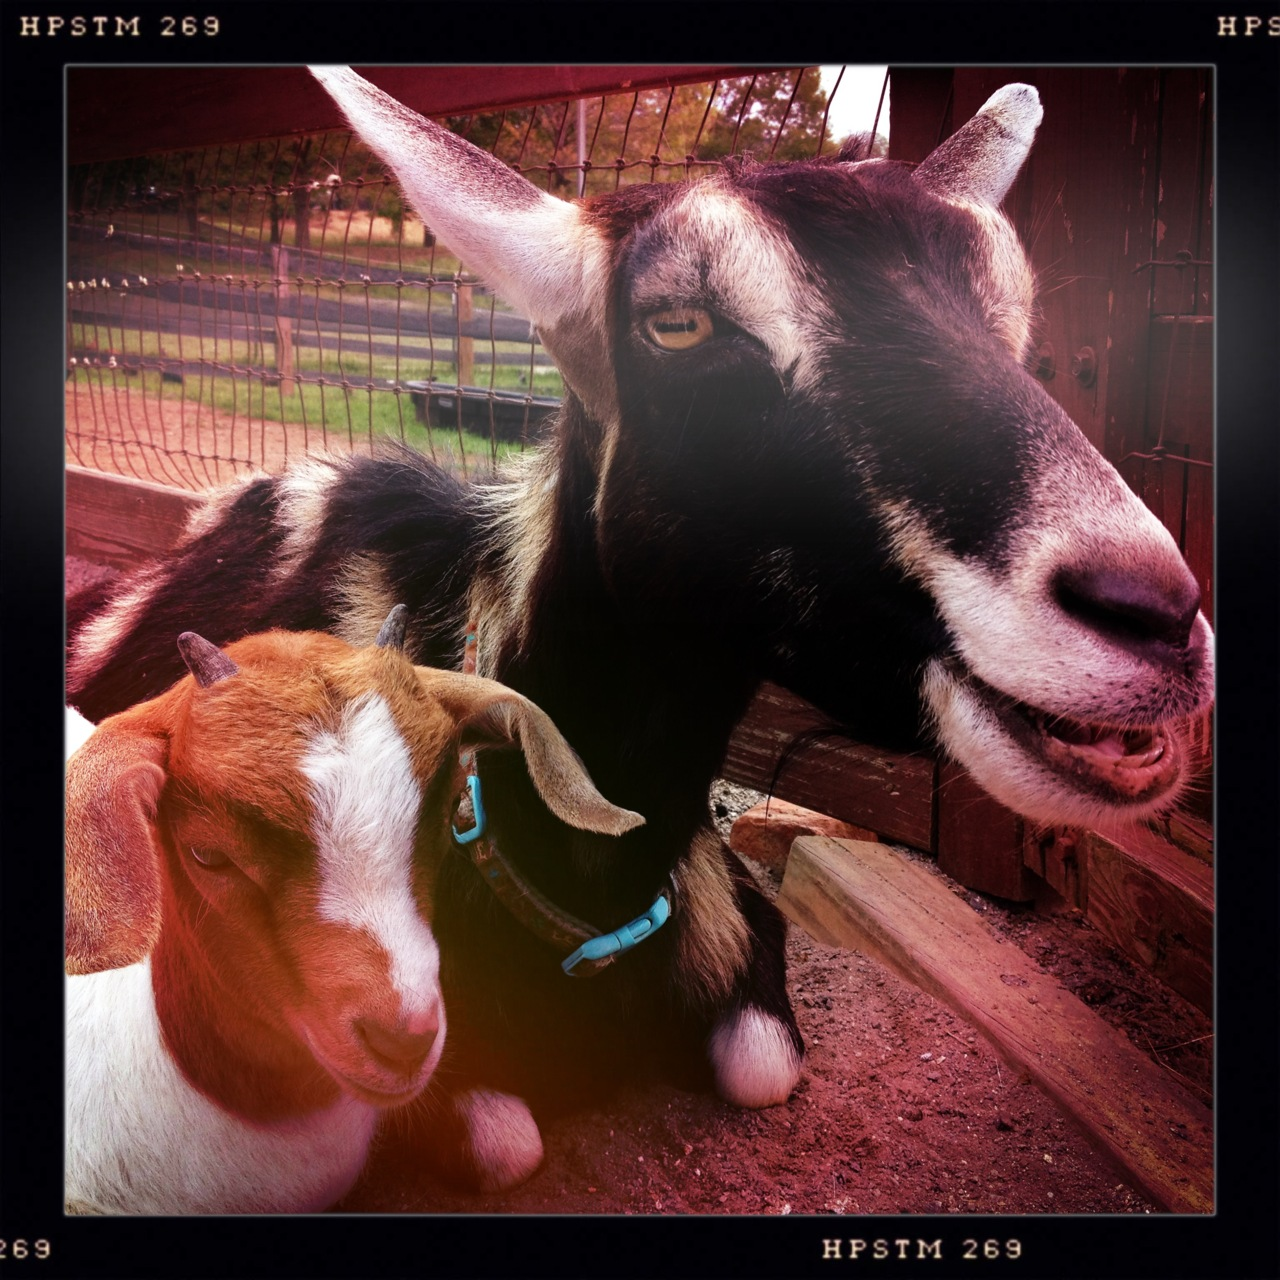 Happy #MothersDay from the goats @BiltmoreEstate. #snuggletime #avl #avlent